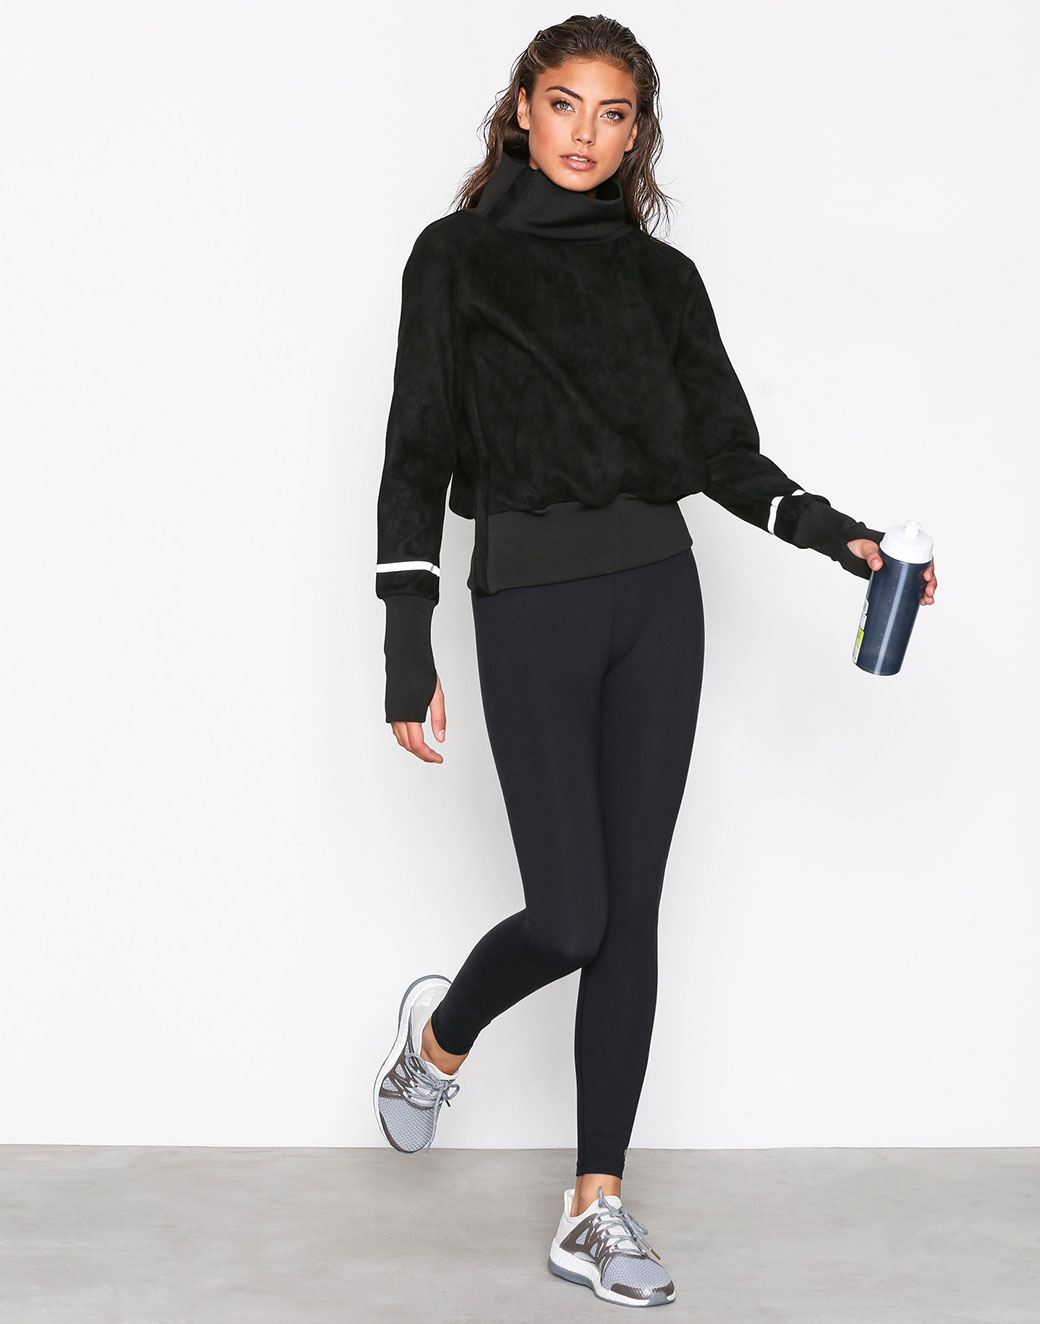 Fashionablefit Jumper 4